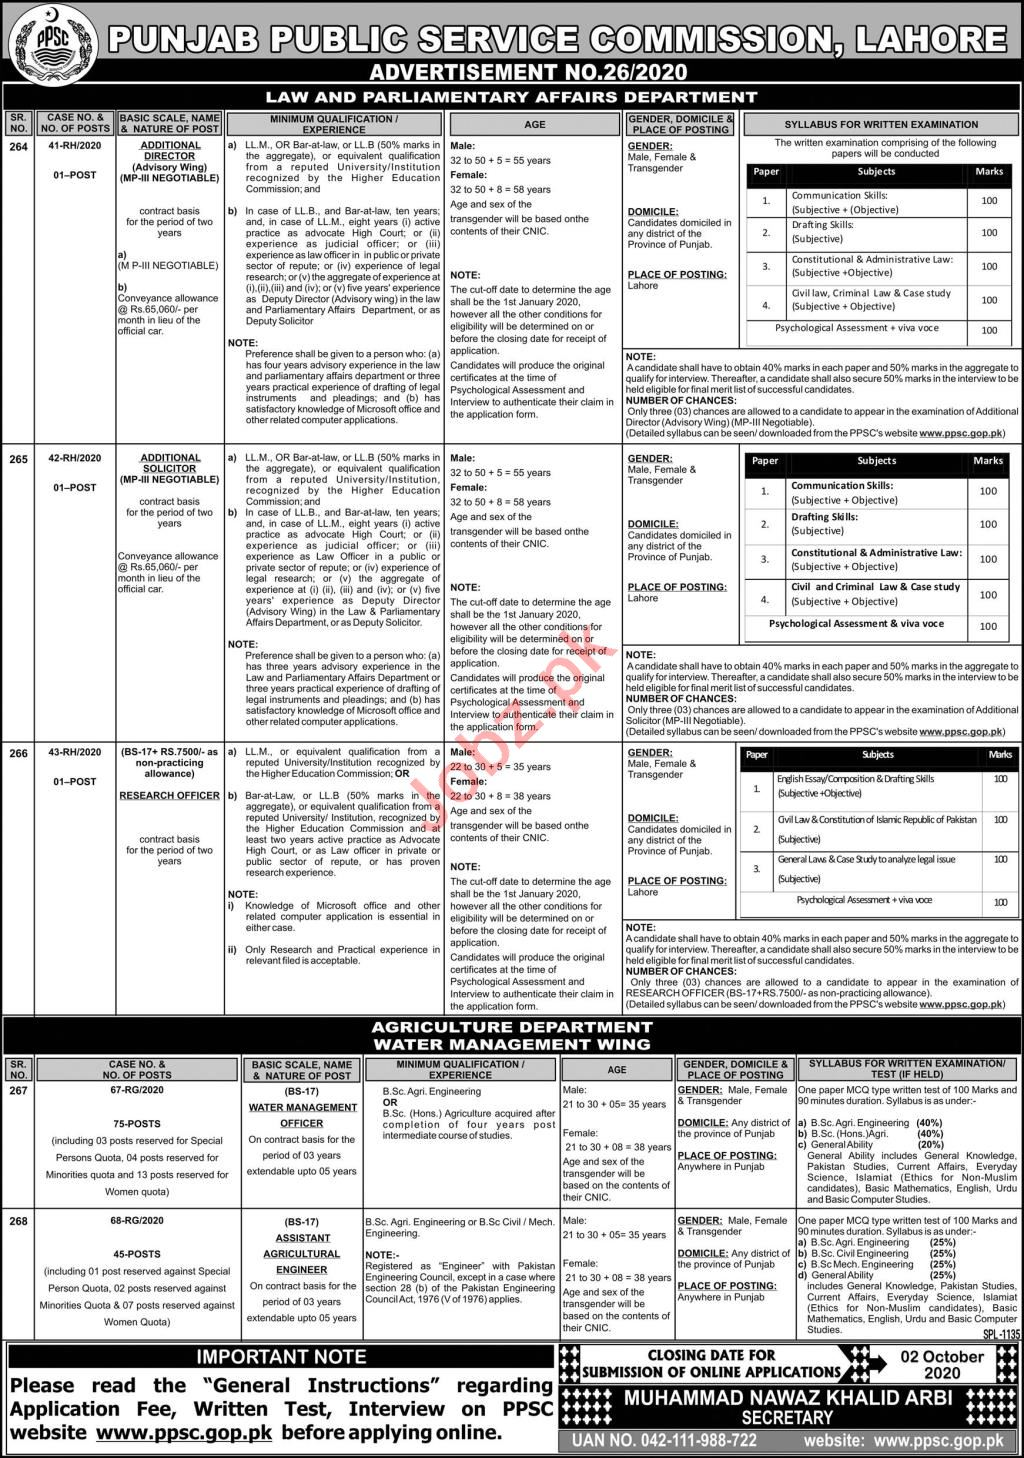 Water Management Officer & Asst Agricultural Engineer Jobs